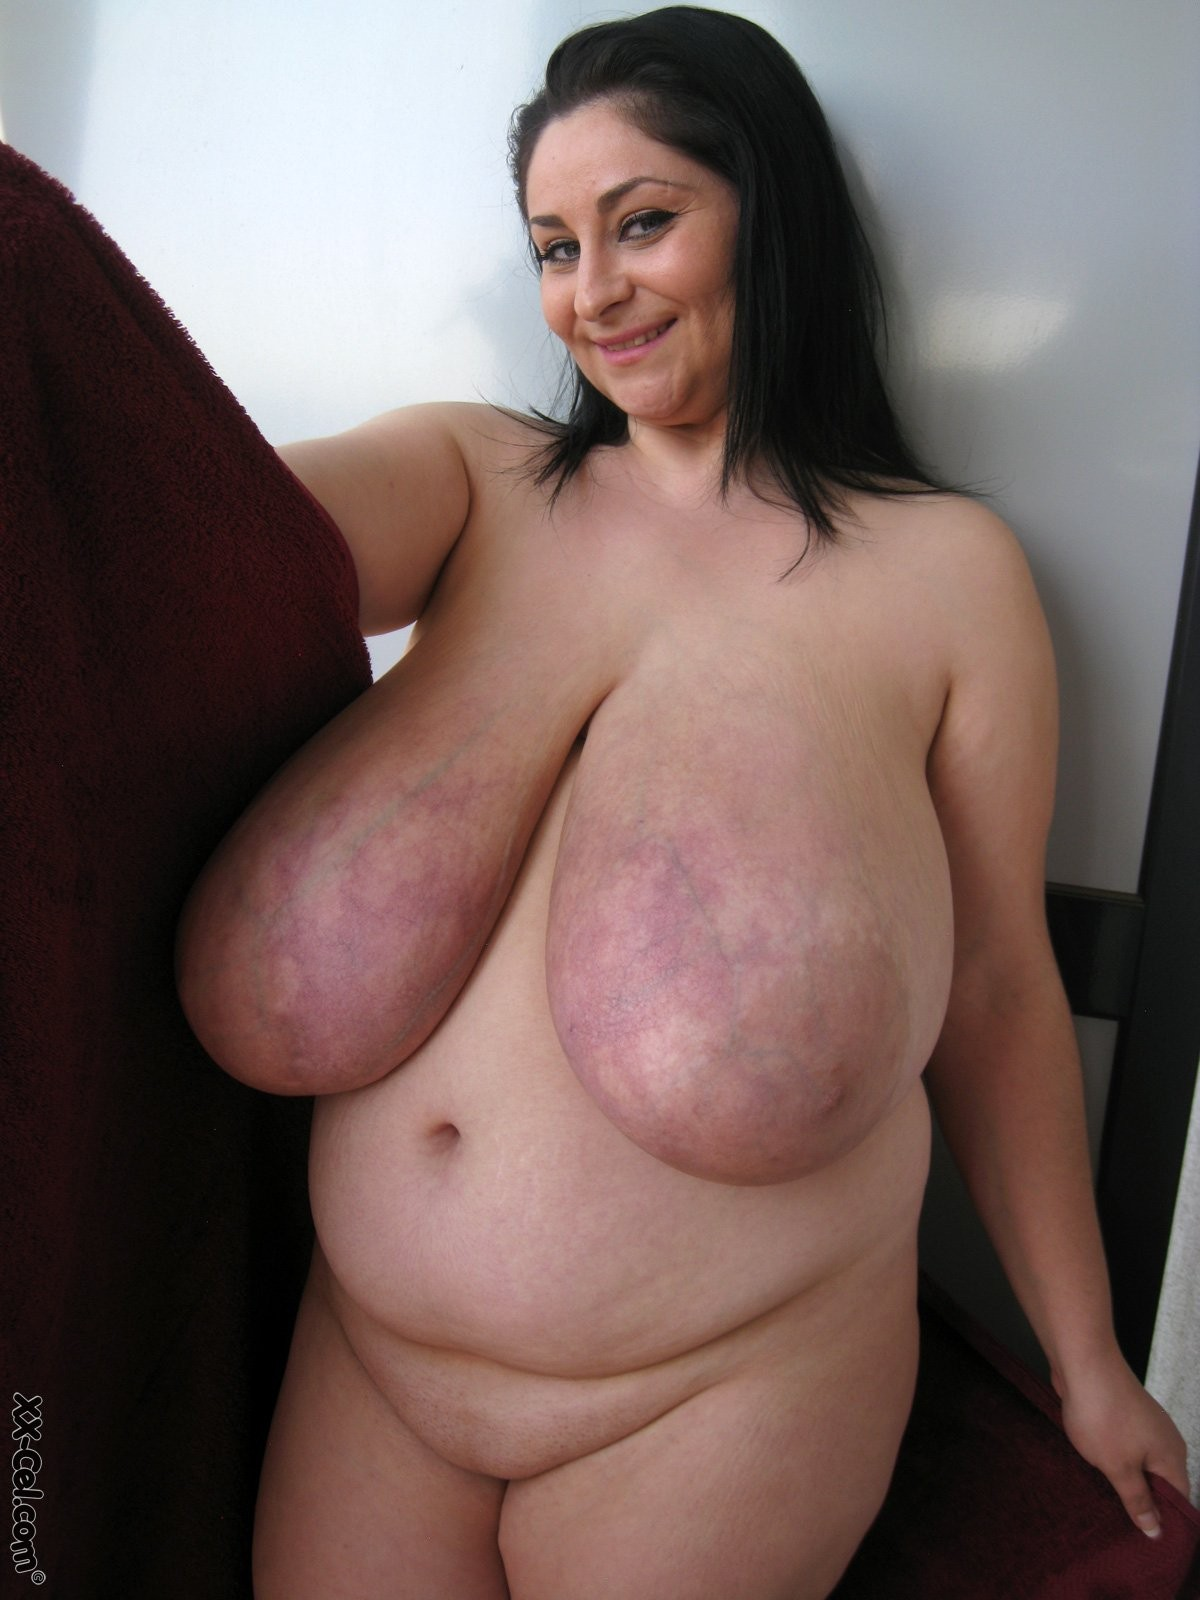 Huge natural perky boobs-2481